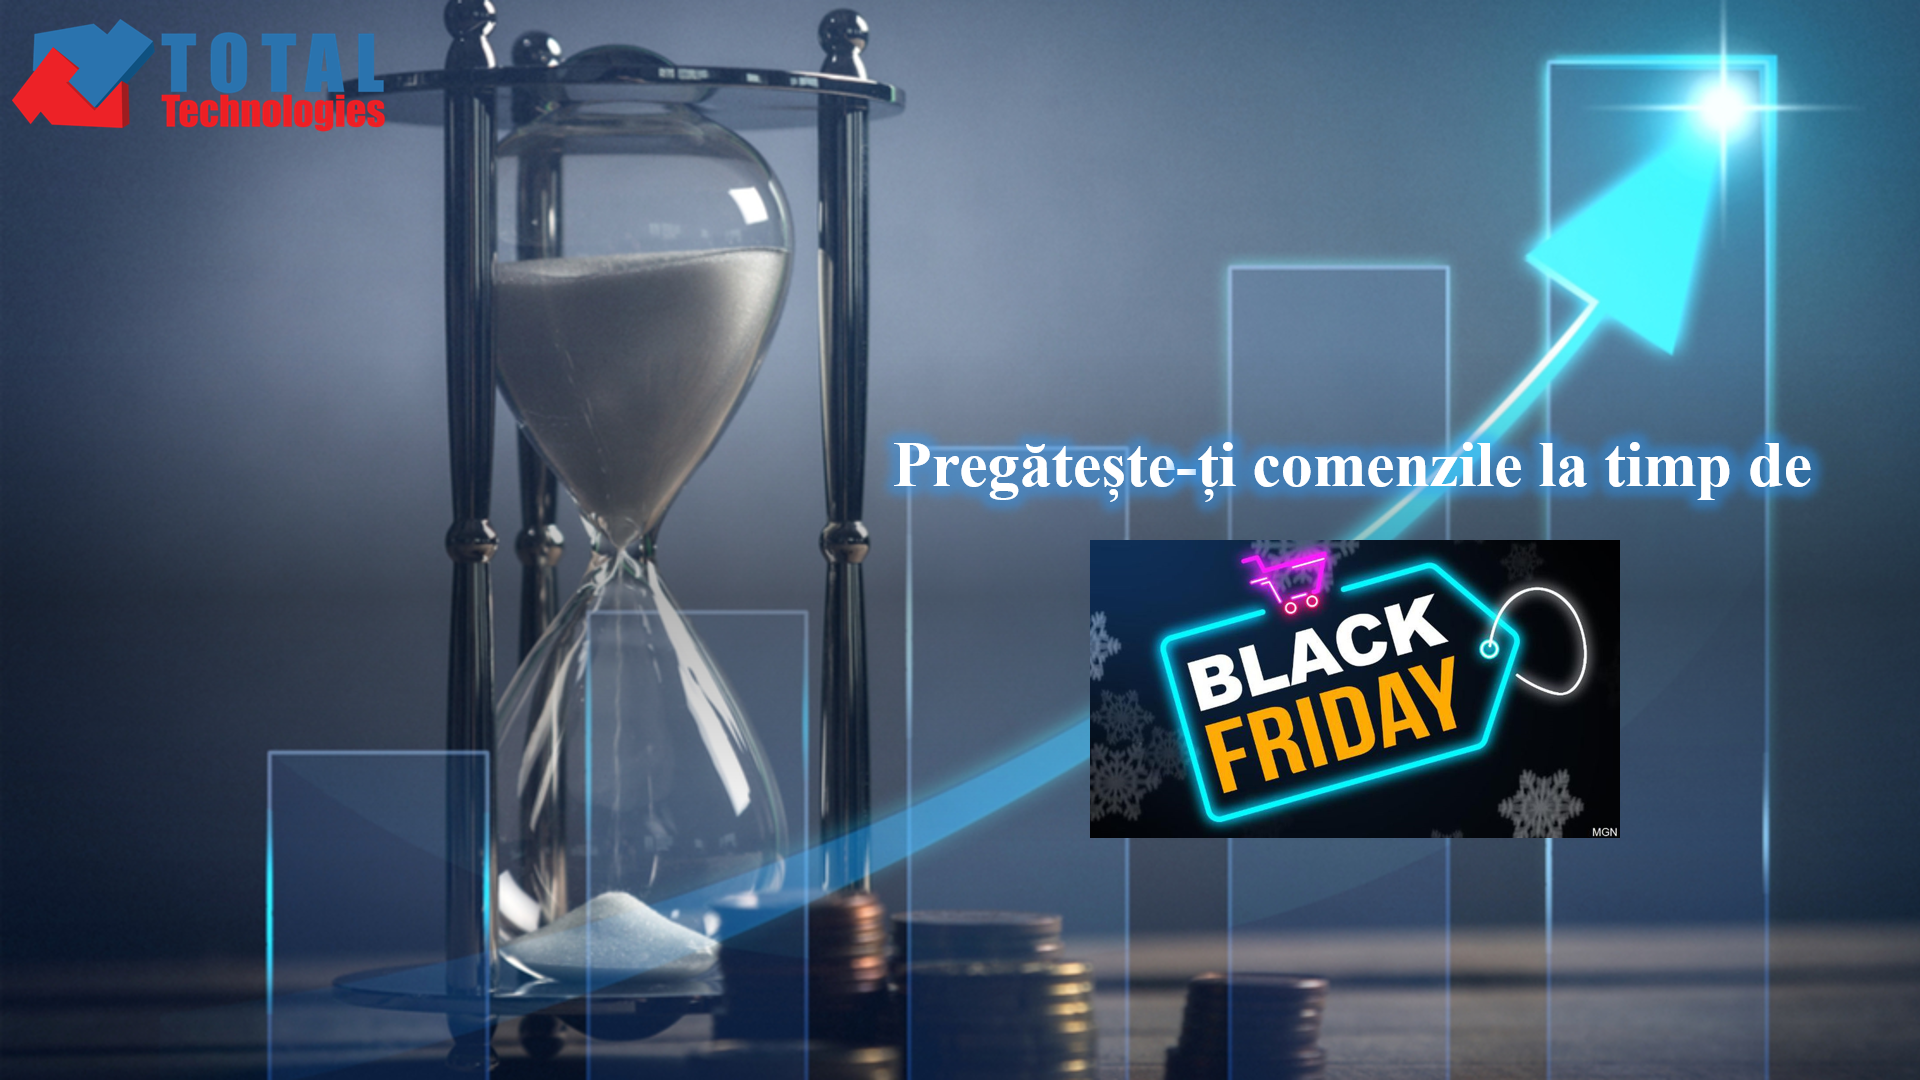 Total Technologies<sup>®</sup>, near you this Black Friday! Time is running, be ready!